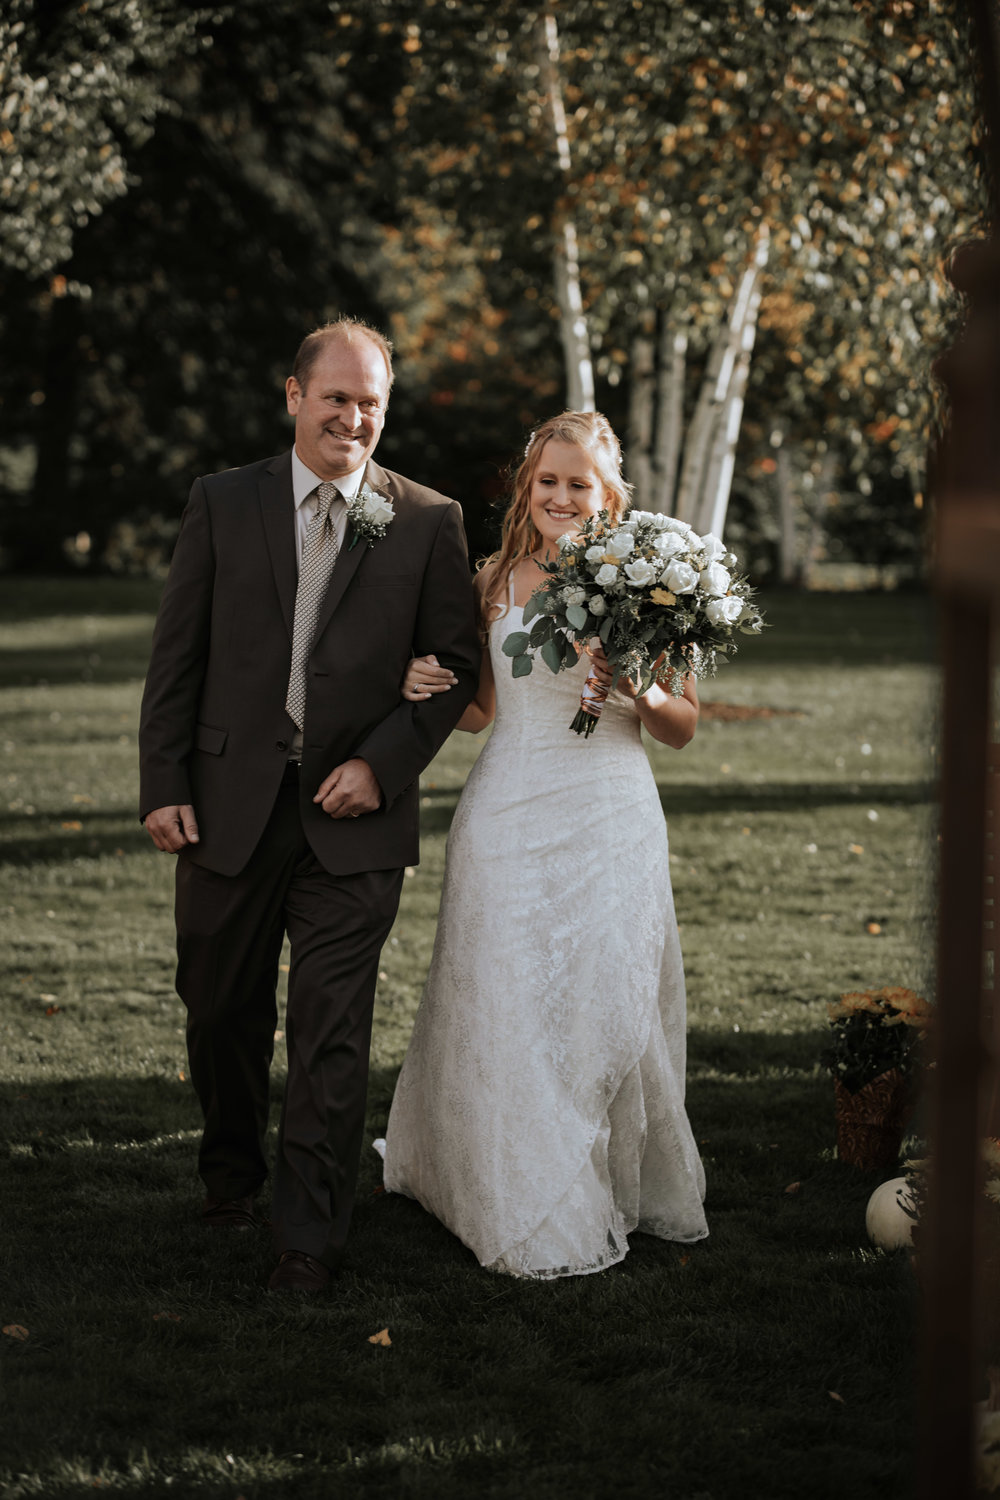 Vermont Wedding | Lorianna Weathers Photography-0496.jpg